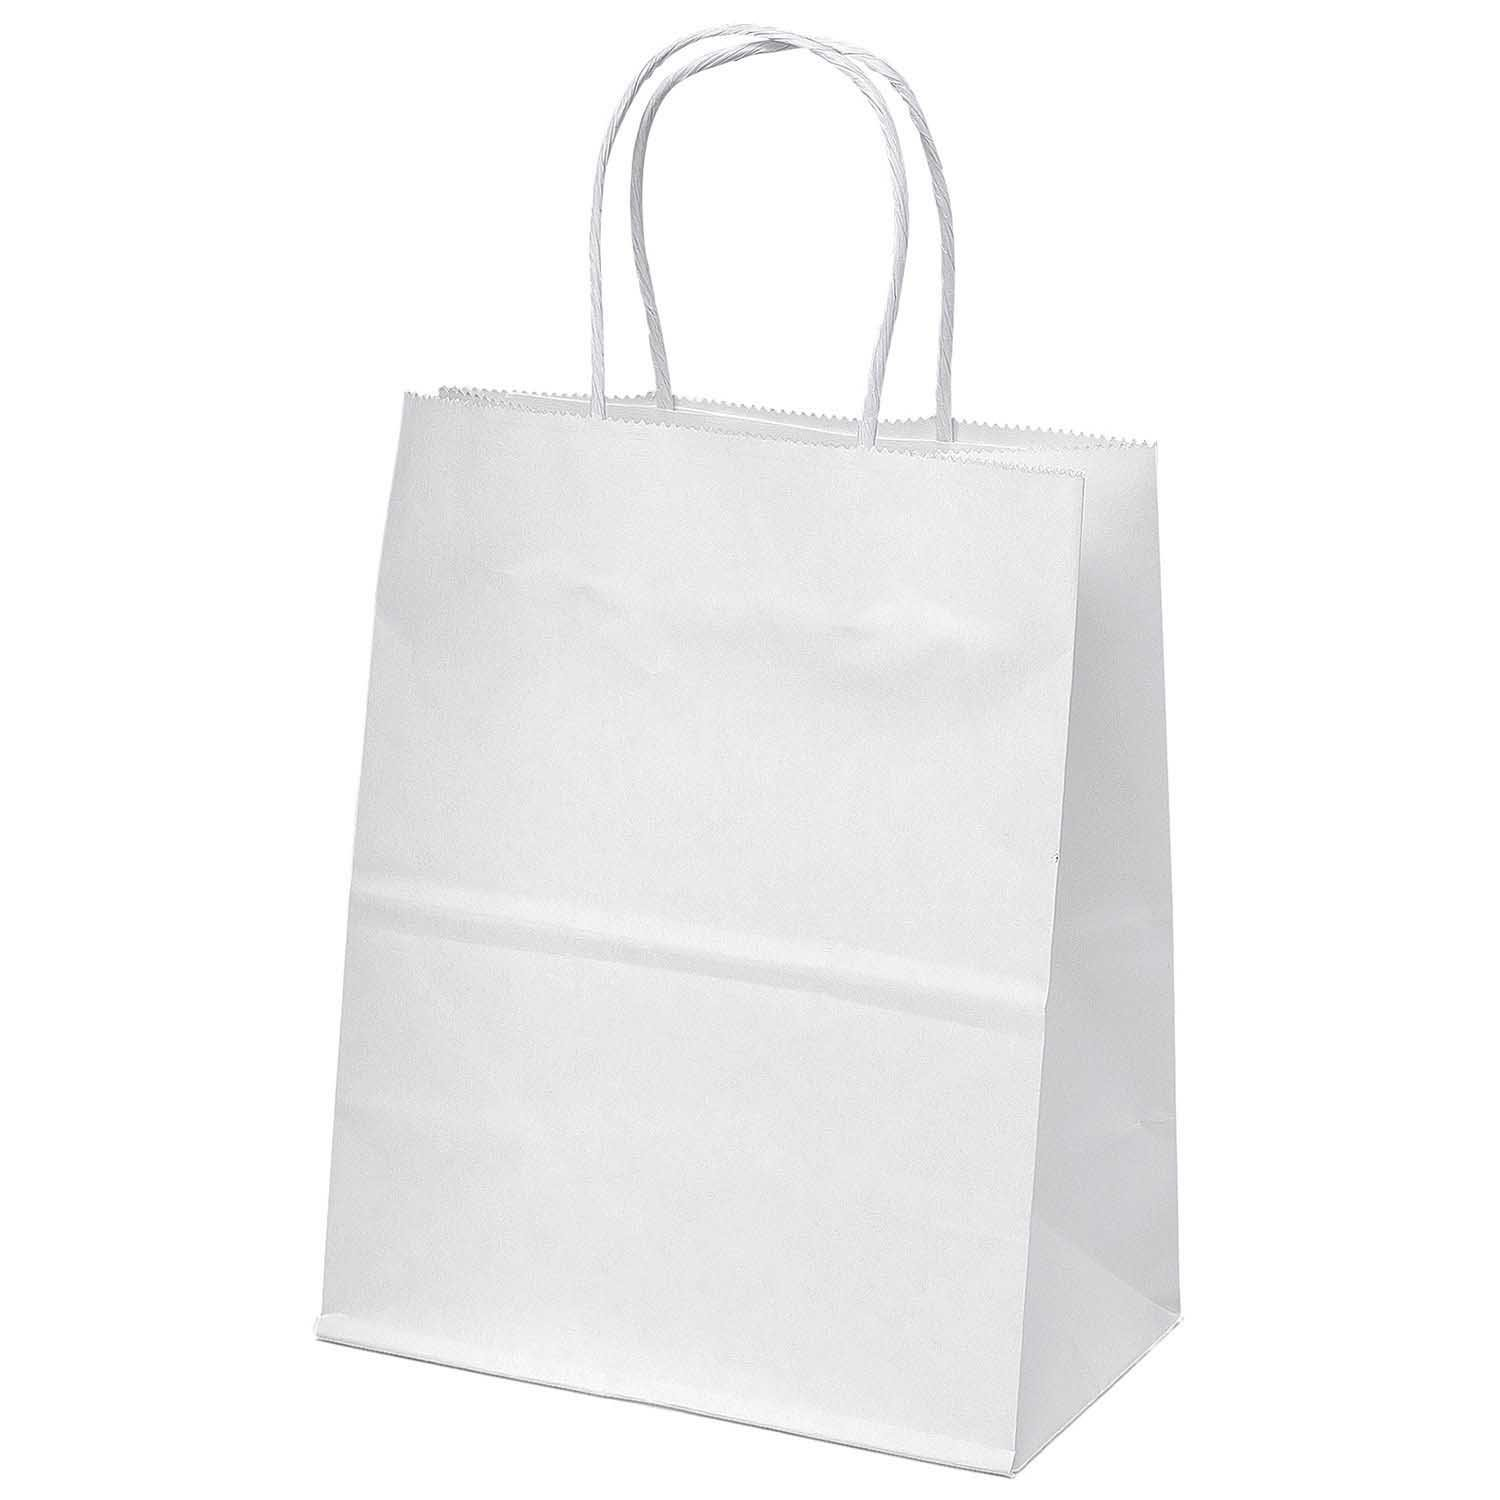 White Kraft Paper Bags Ping Merchandise Party Favor Gift 10 X8 Lot Handles